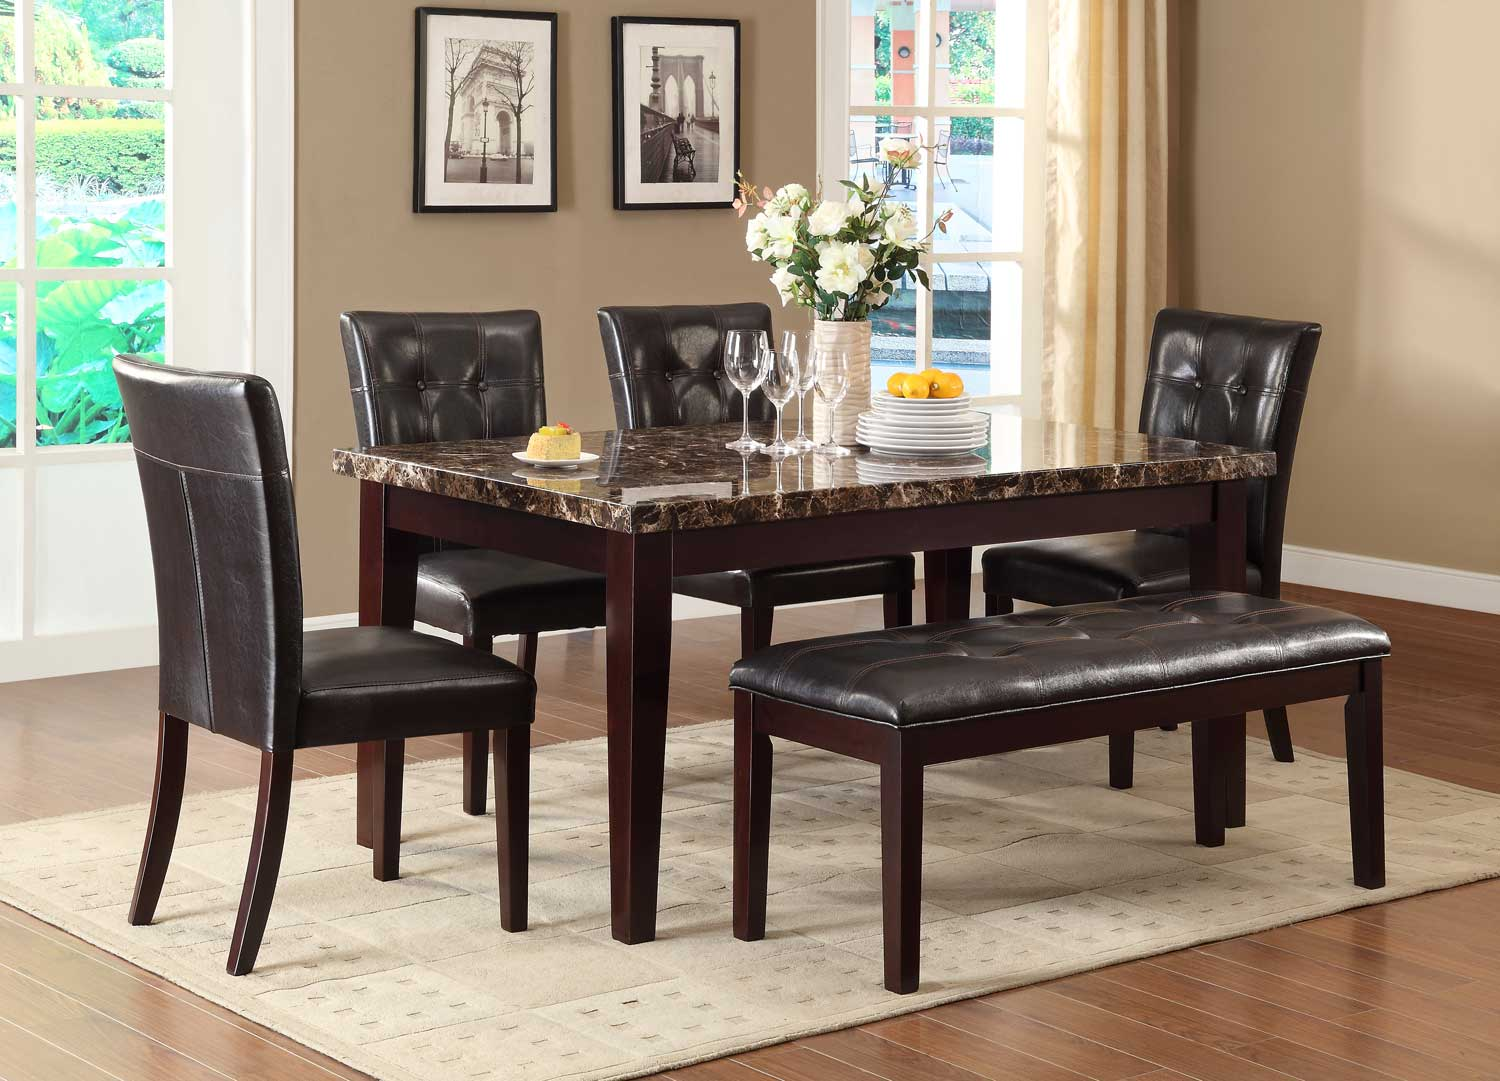 Homelegance Teague Faux Marble Dining Set - Espresso